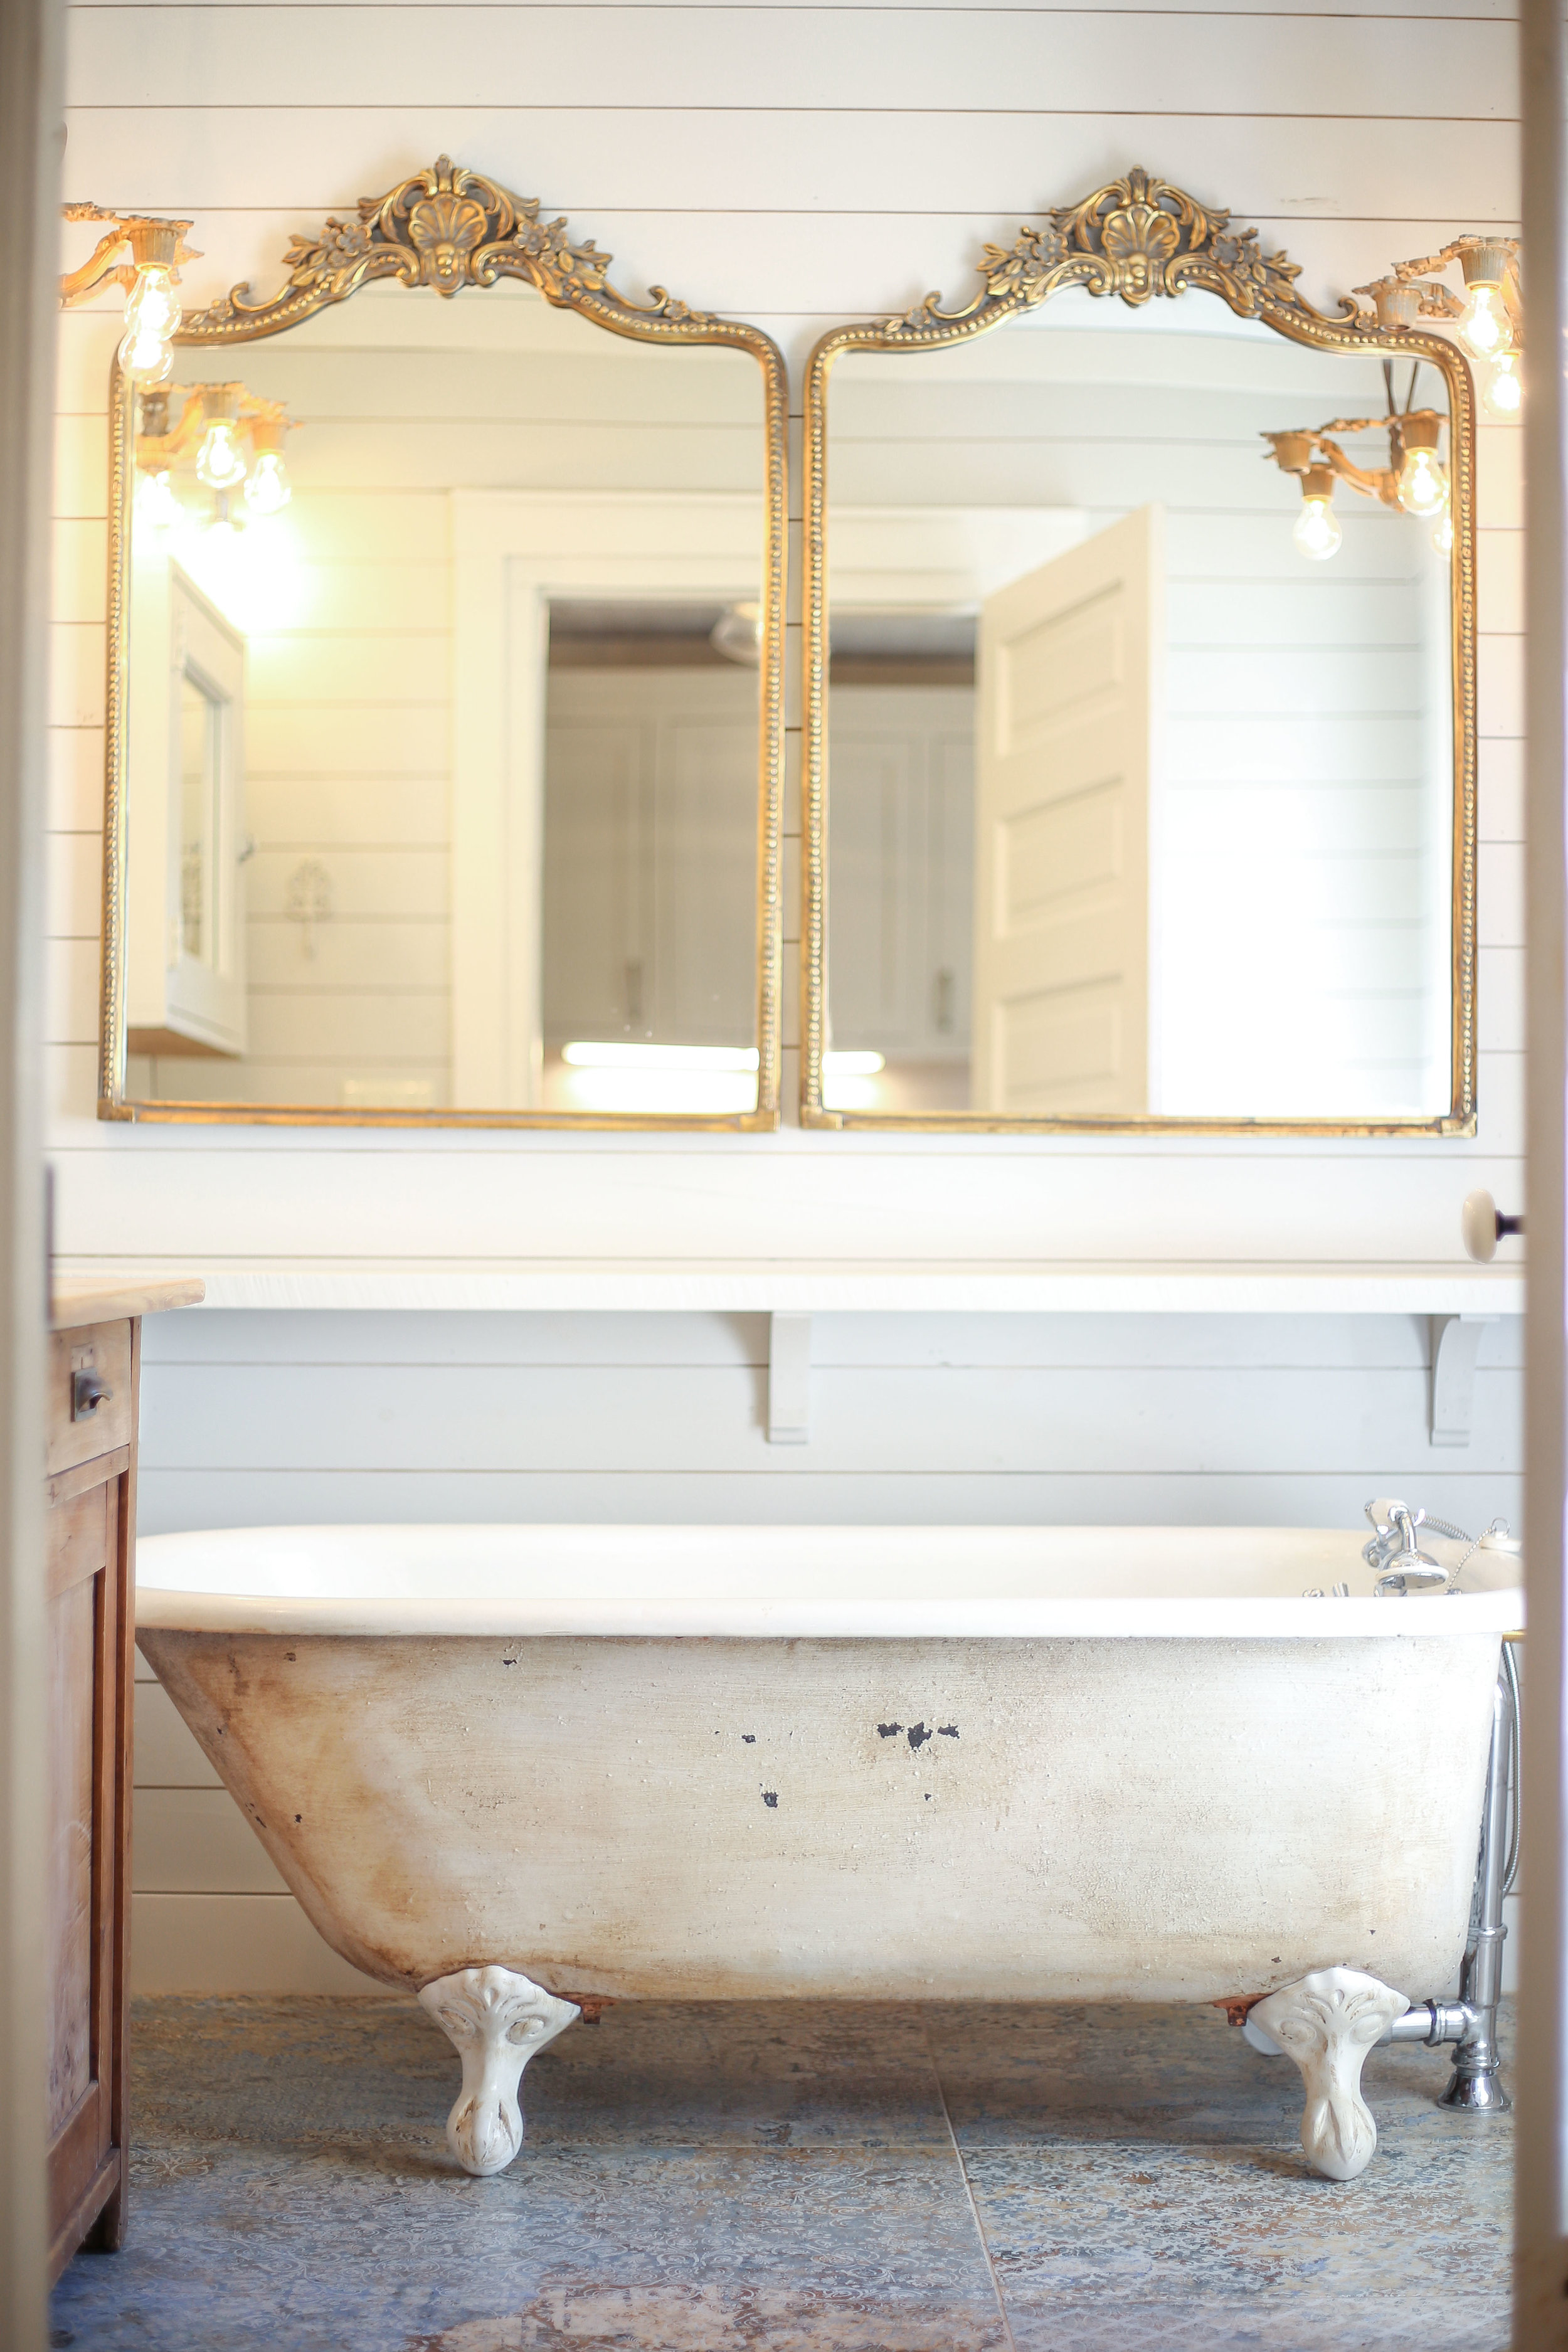 Shealy middle bath mirrors and tub CL.JPG